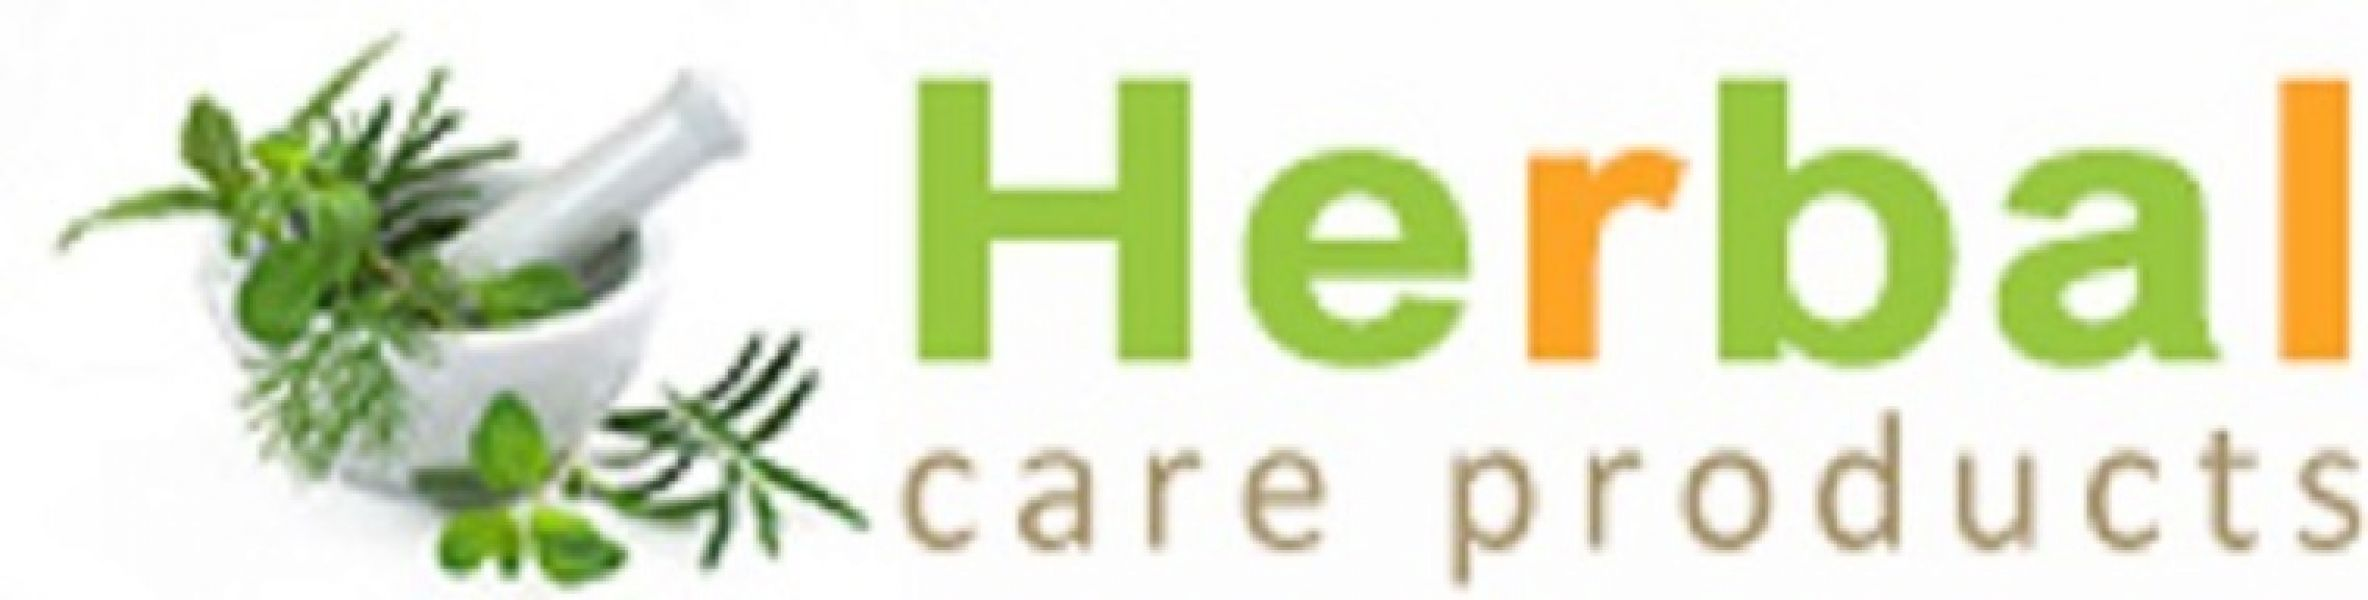 Herbal Care Products: Natural remedies worldwide online treatment at your home